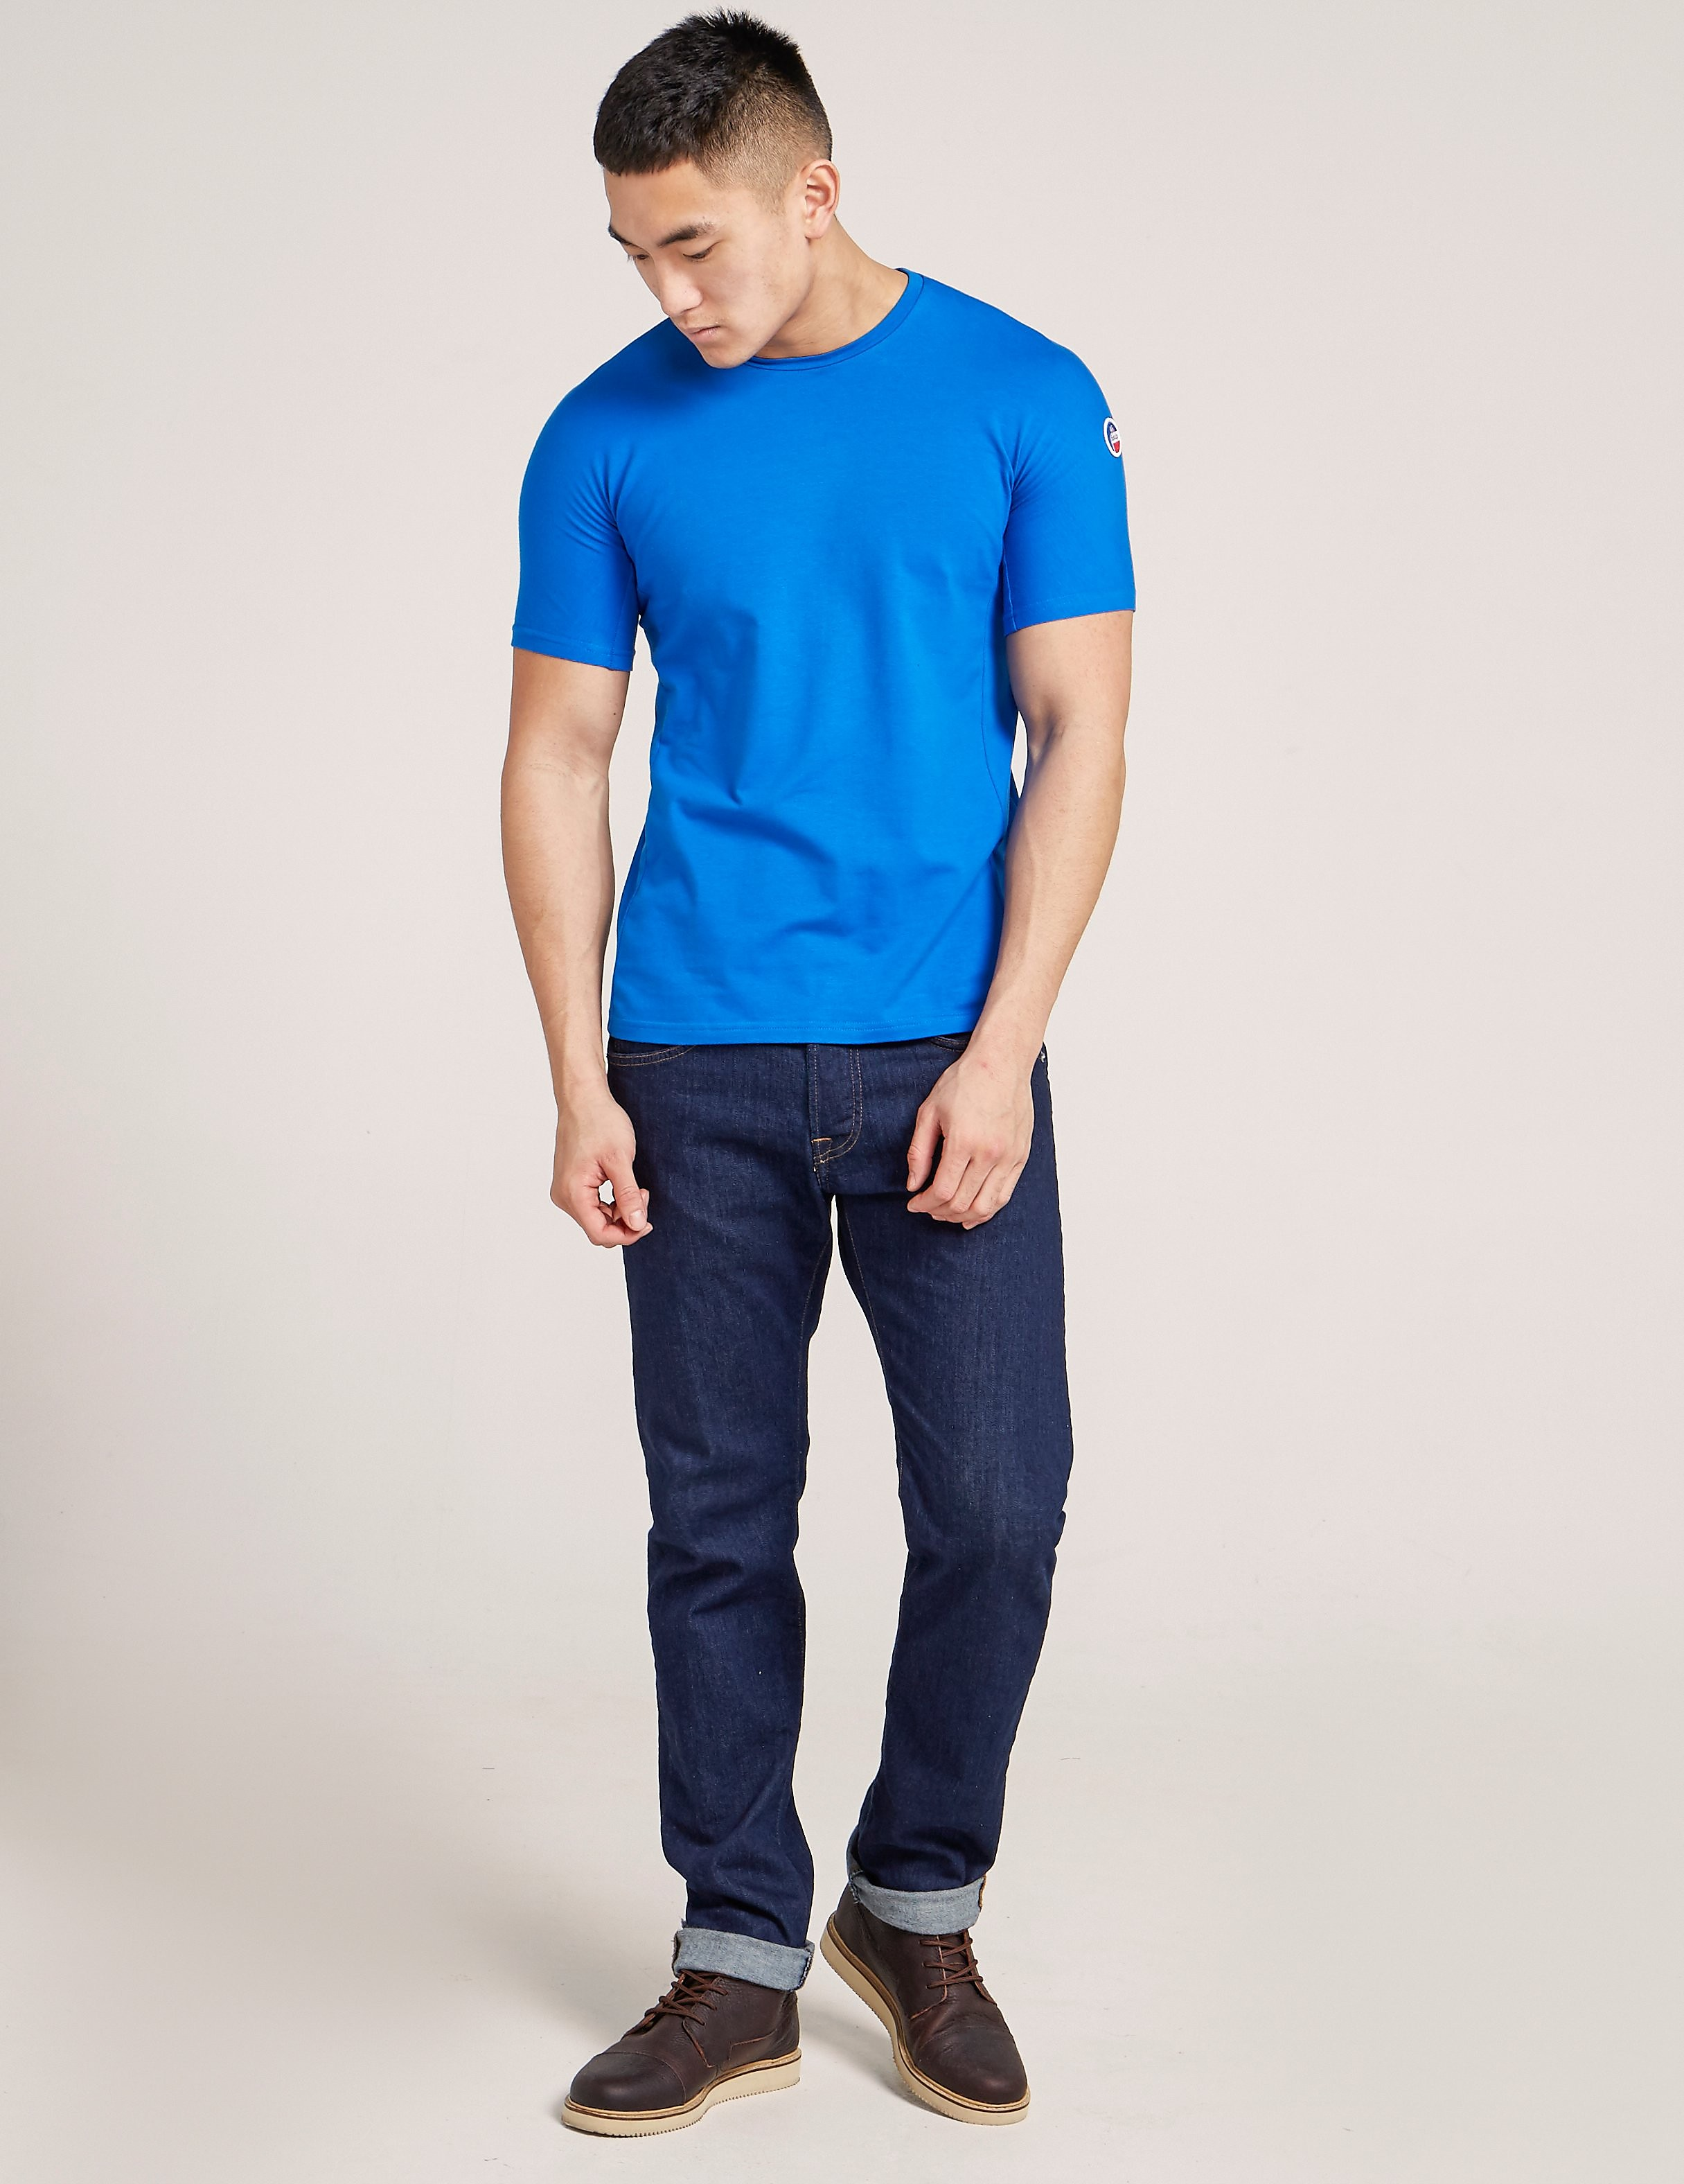 Fusalp Rynn Short Sleeve T-Shirt